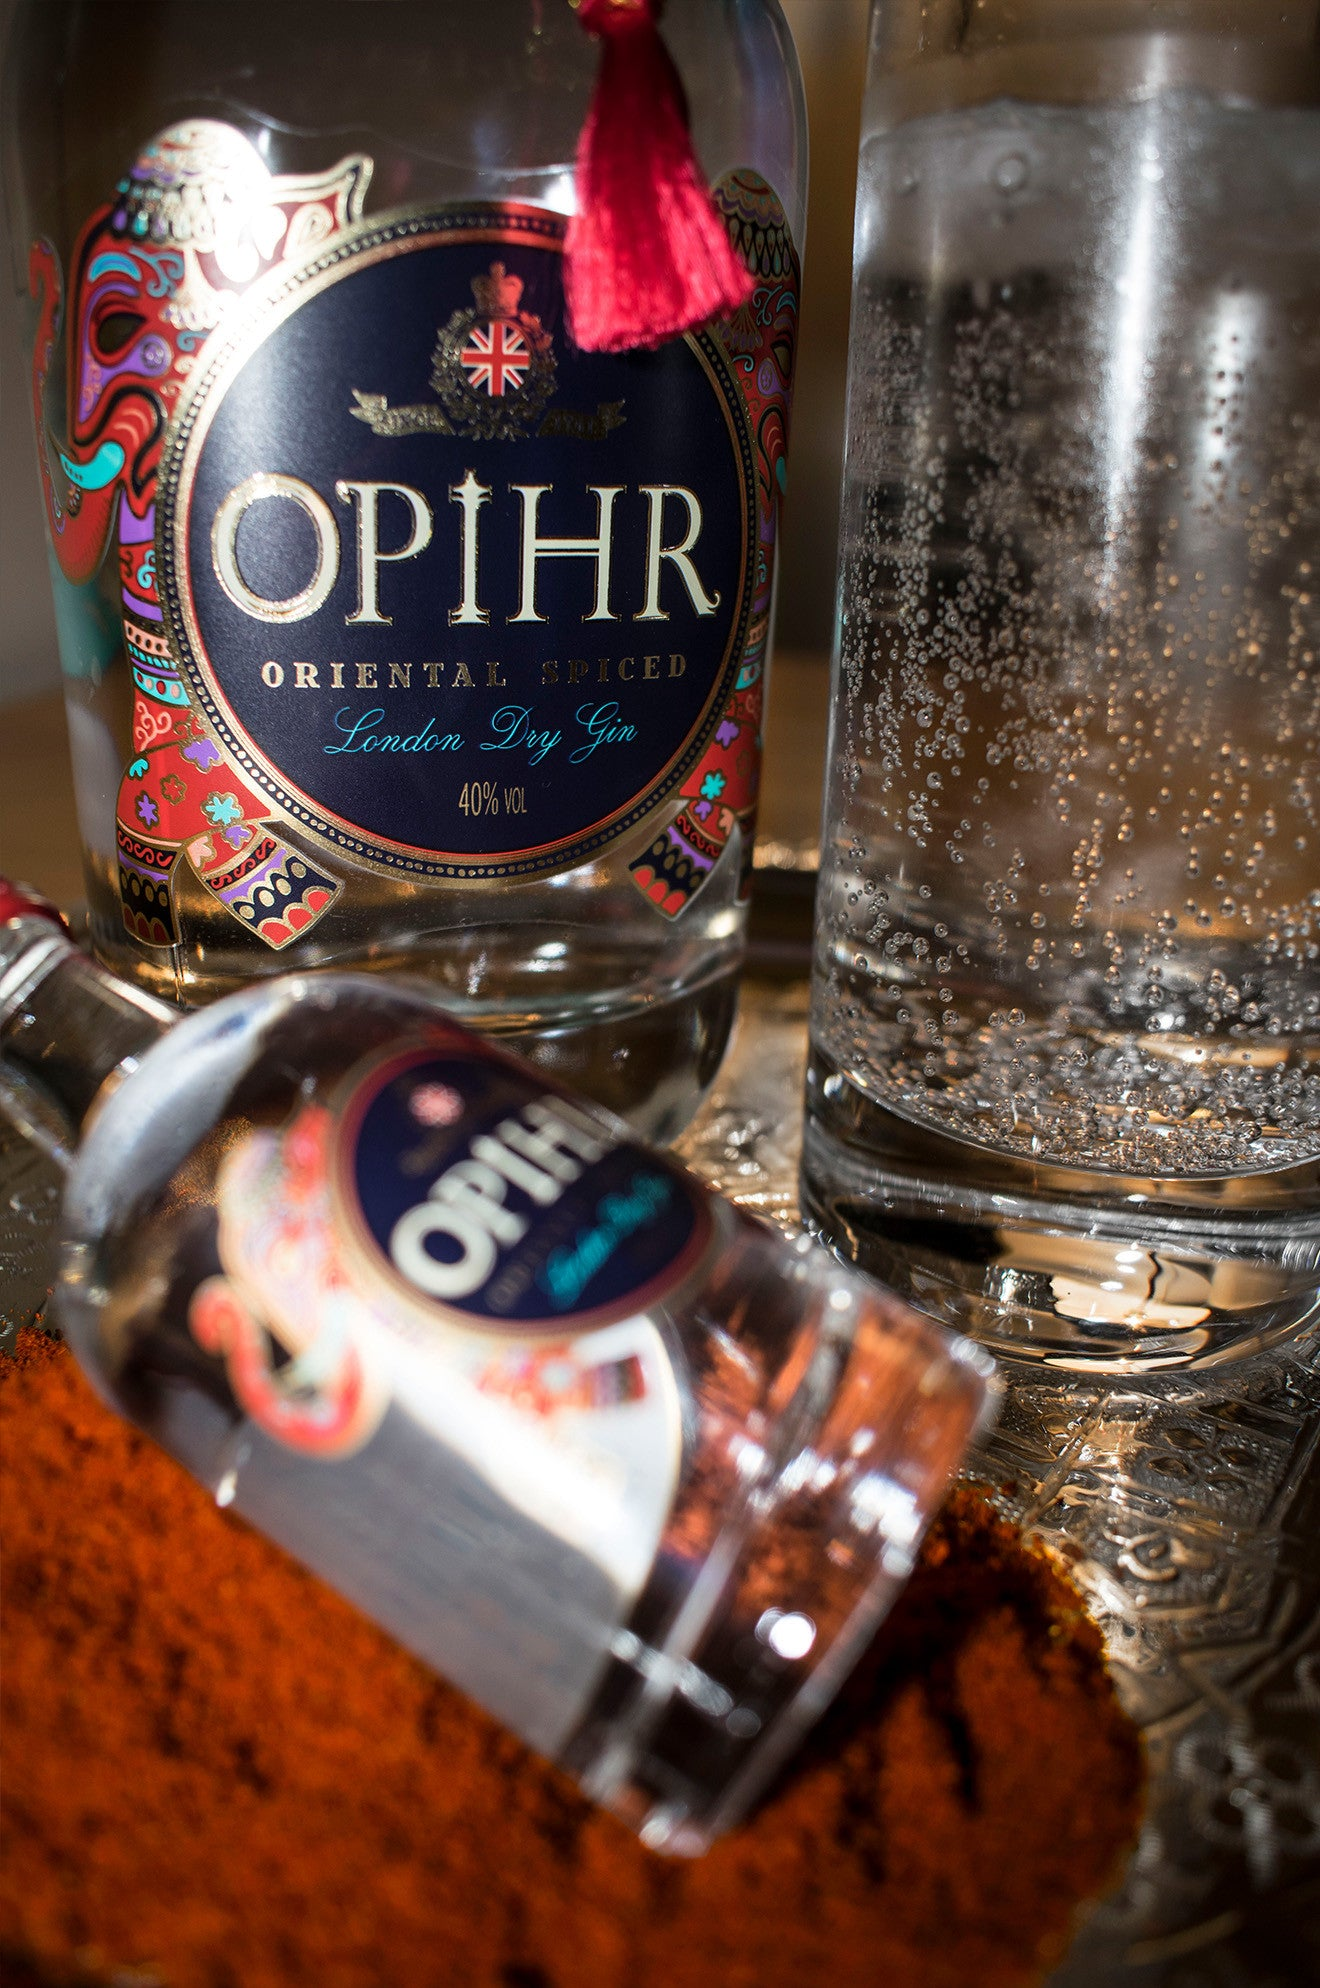 Spiced gin and tonic by Opihr gin